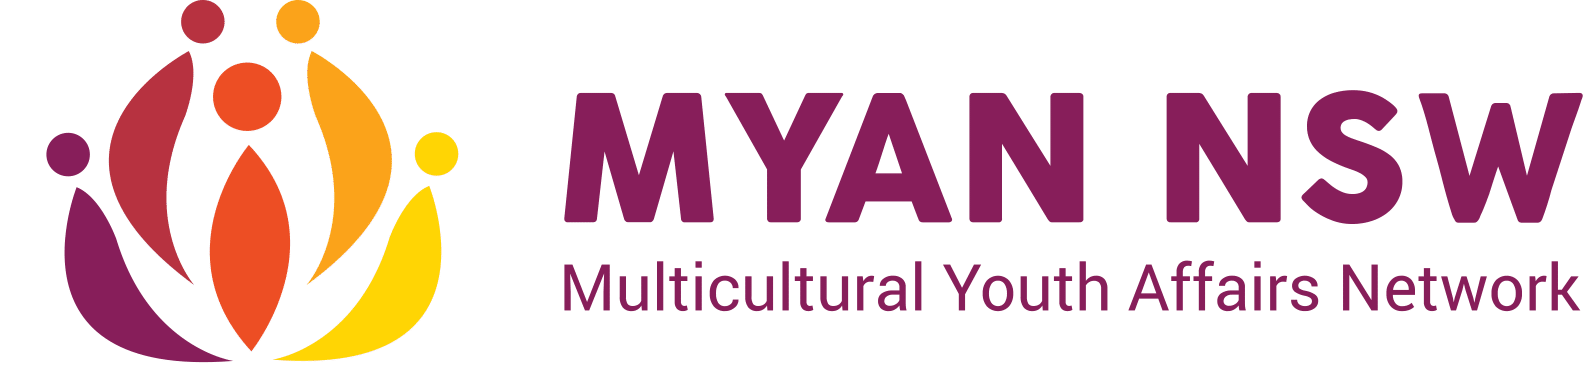 Multicultural Youth Affairs Network